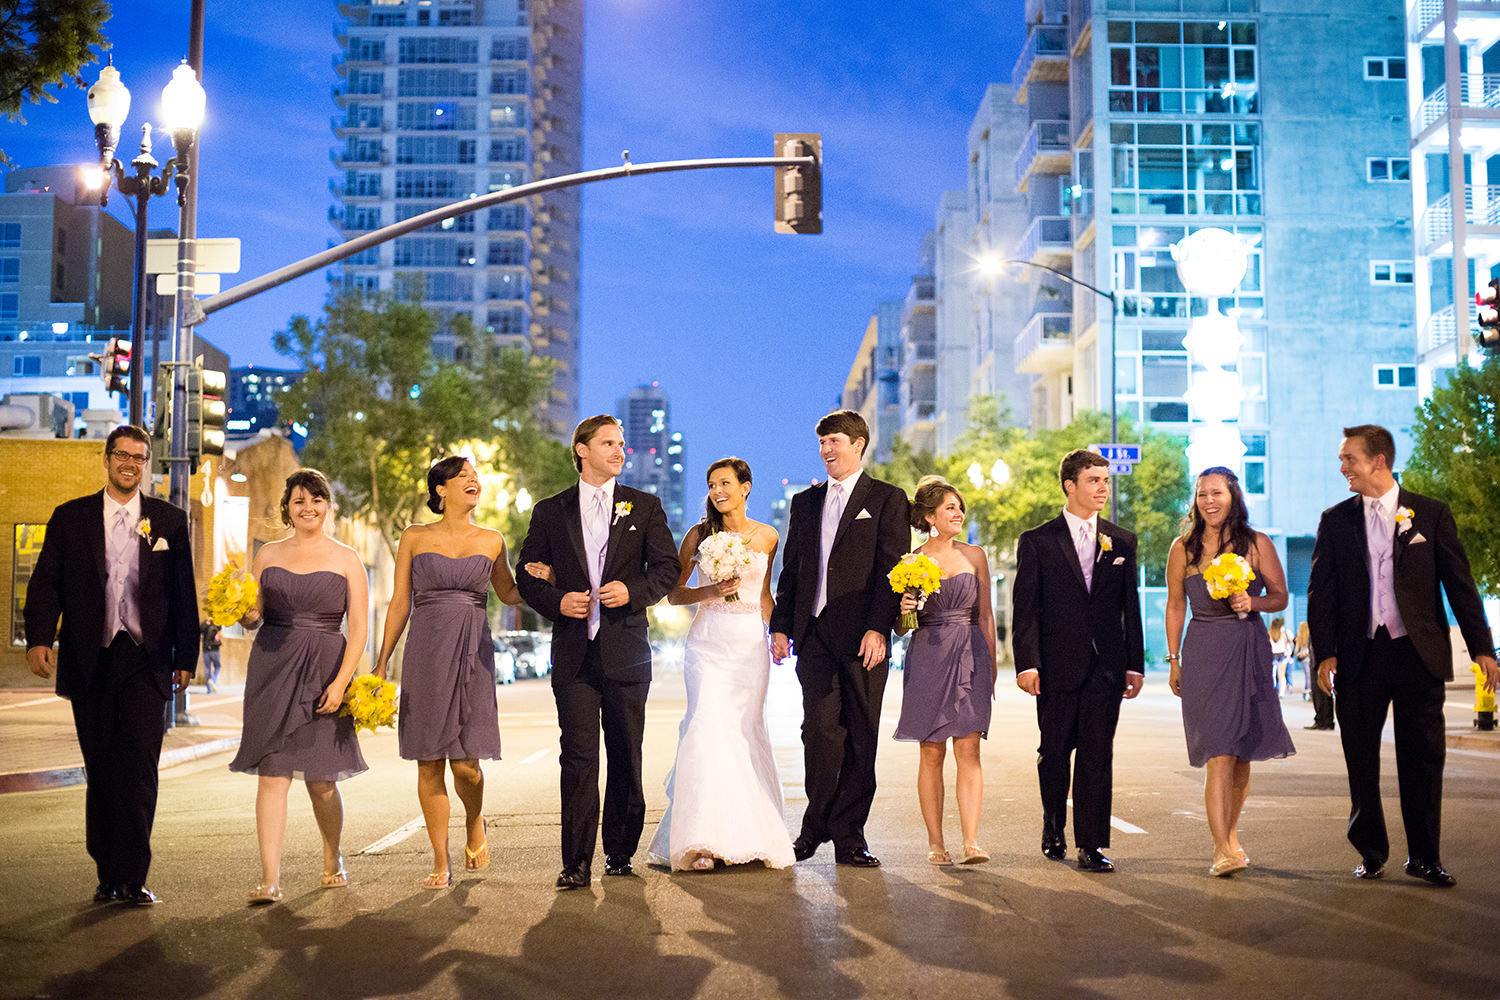 Creative wedding party portrait downtown at night